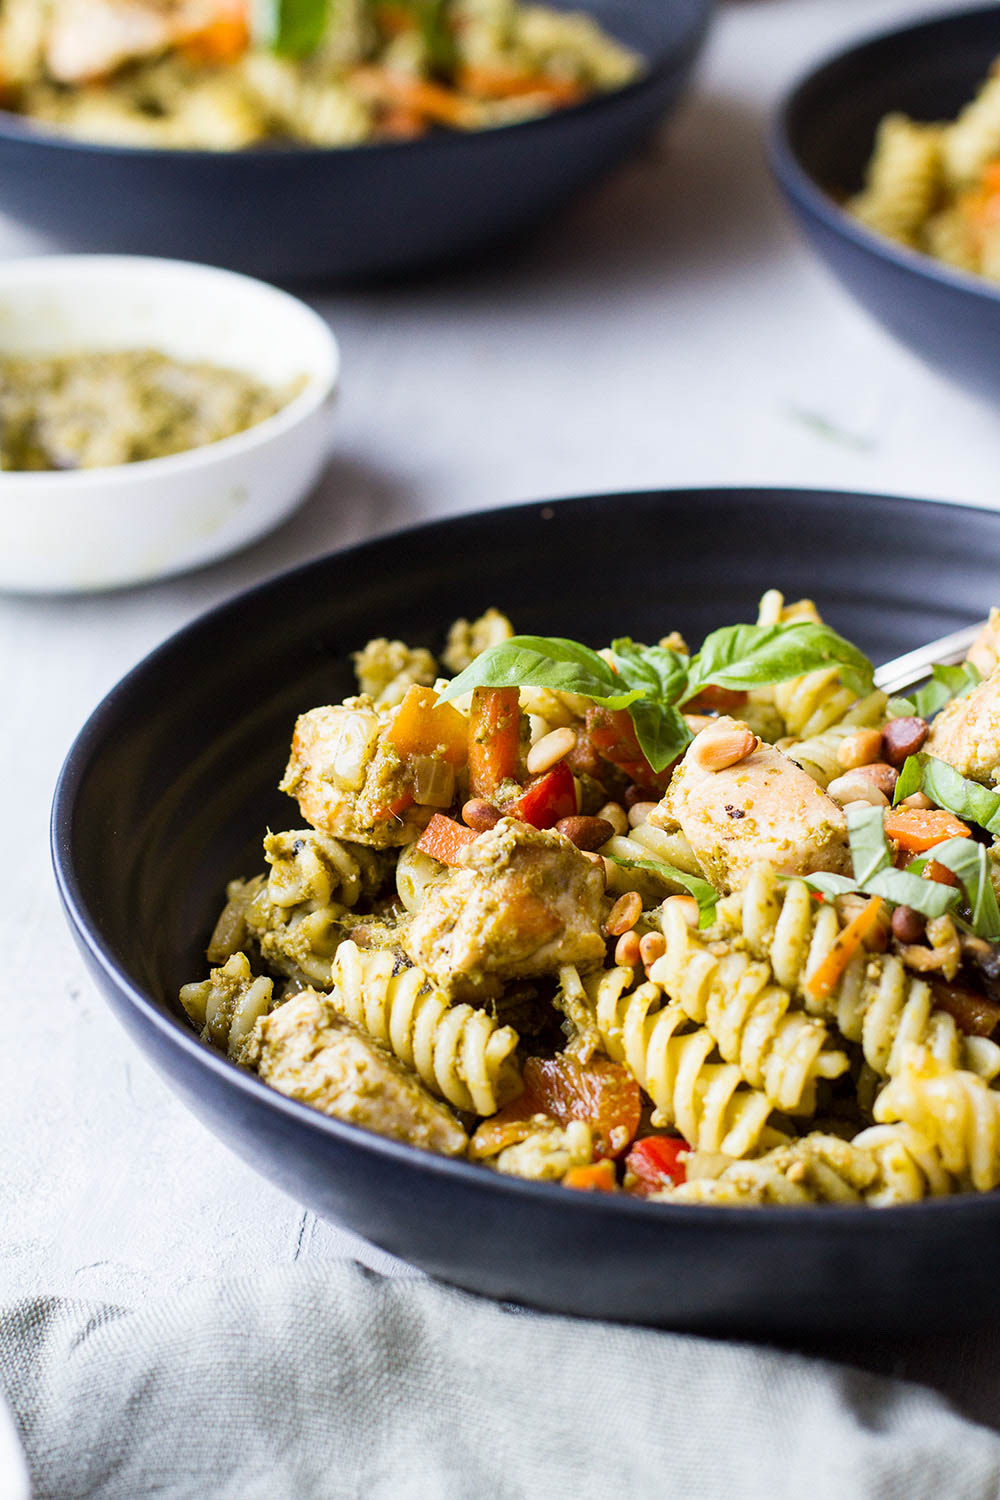 A dark bowl with pasta, vegetables and pesto.